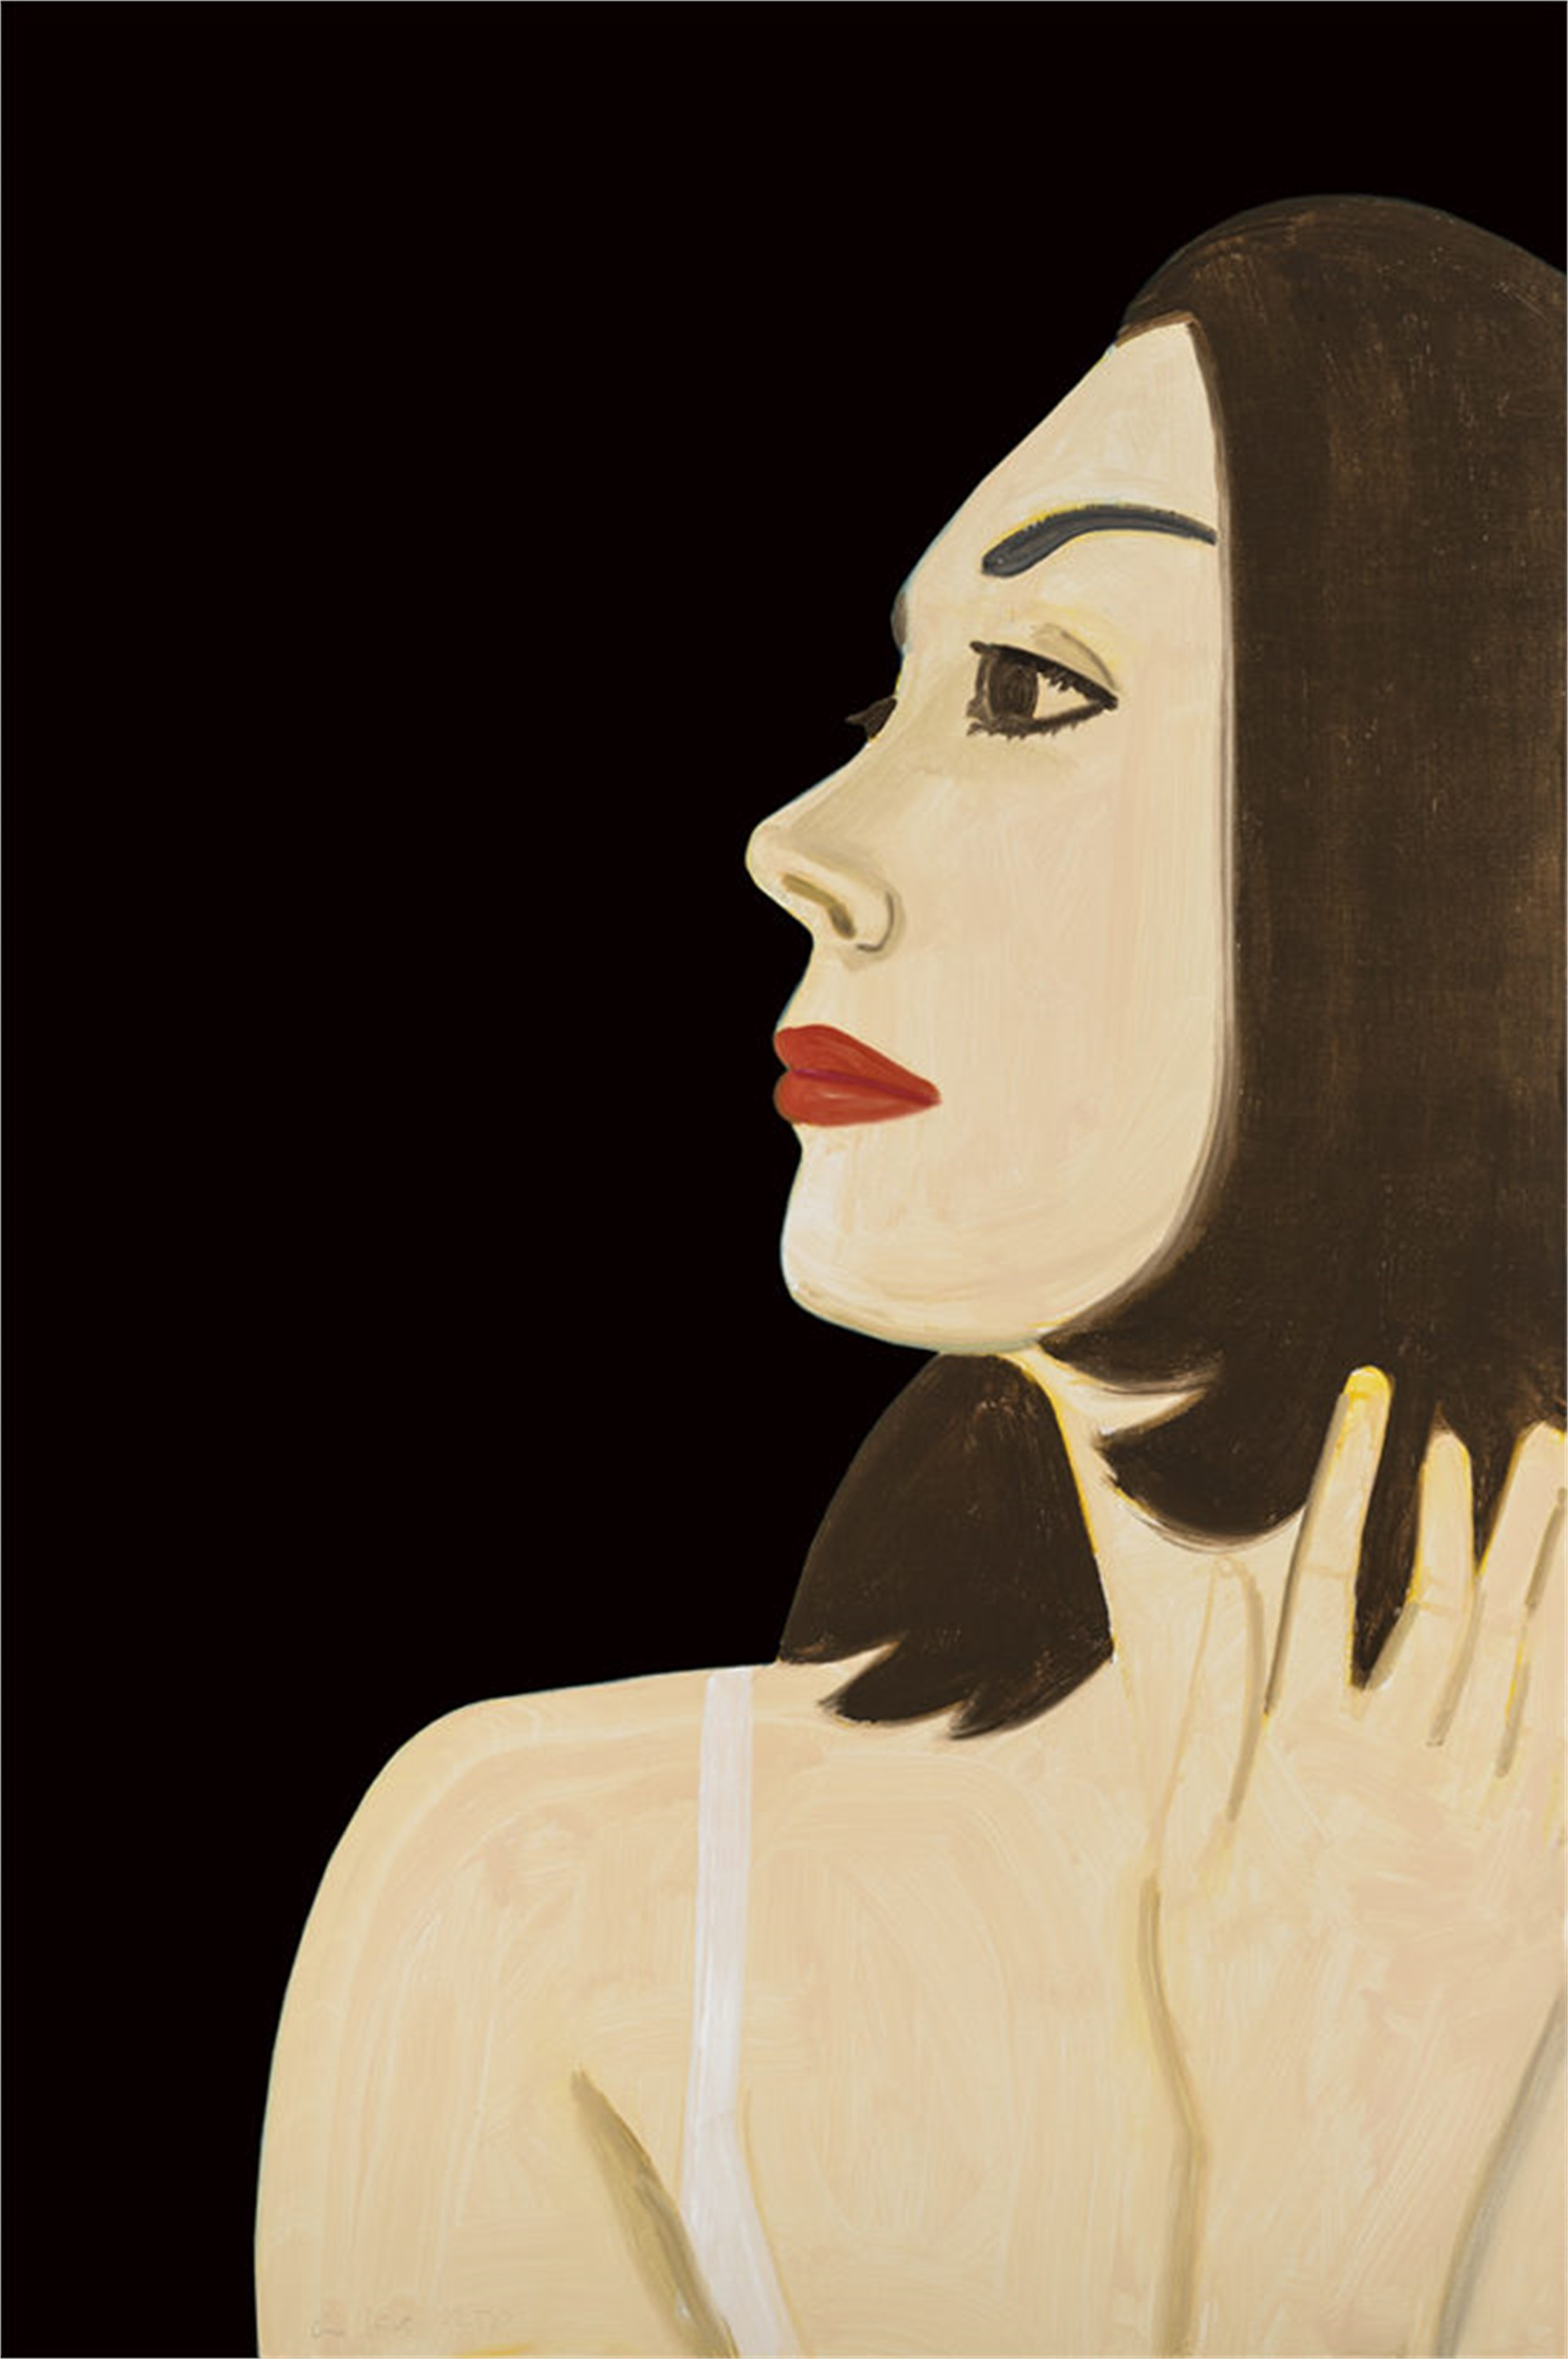 Laura 1 by Alex Katz